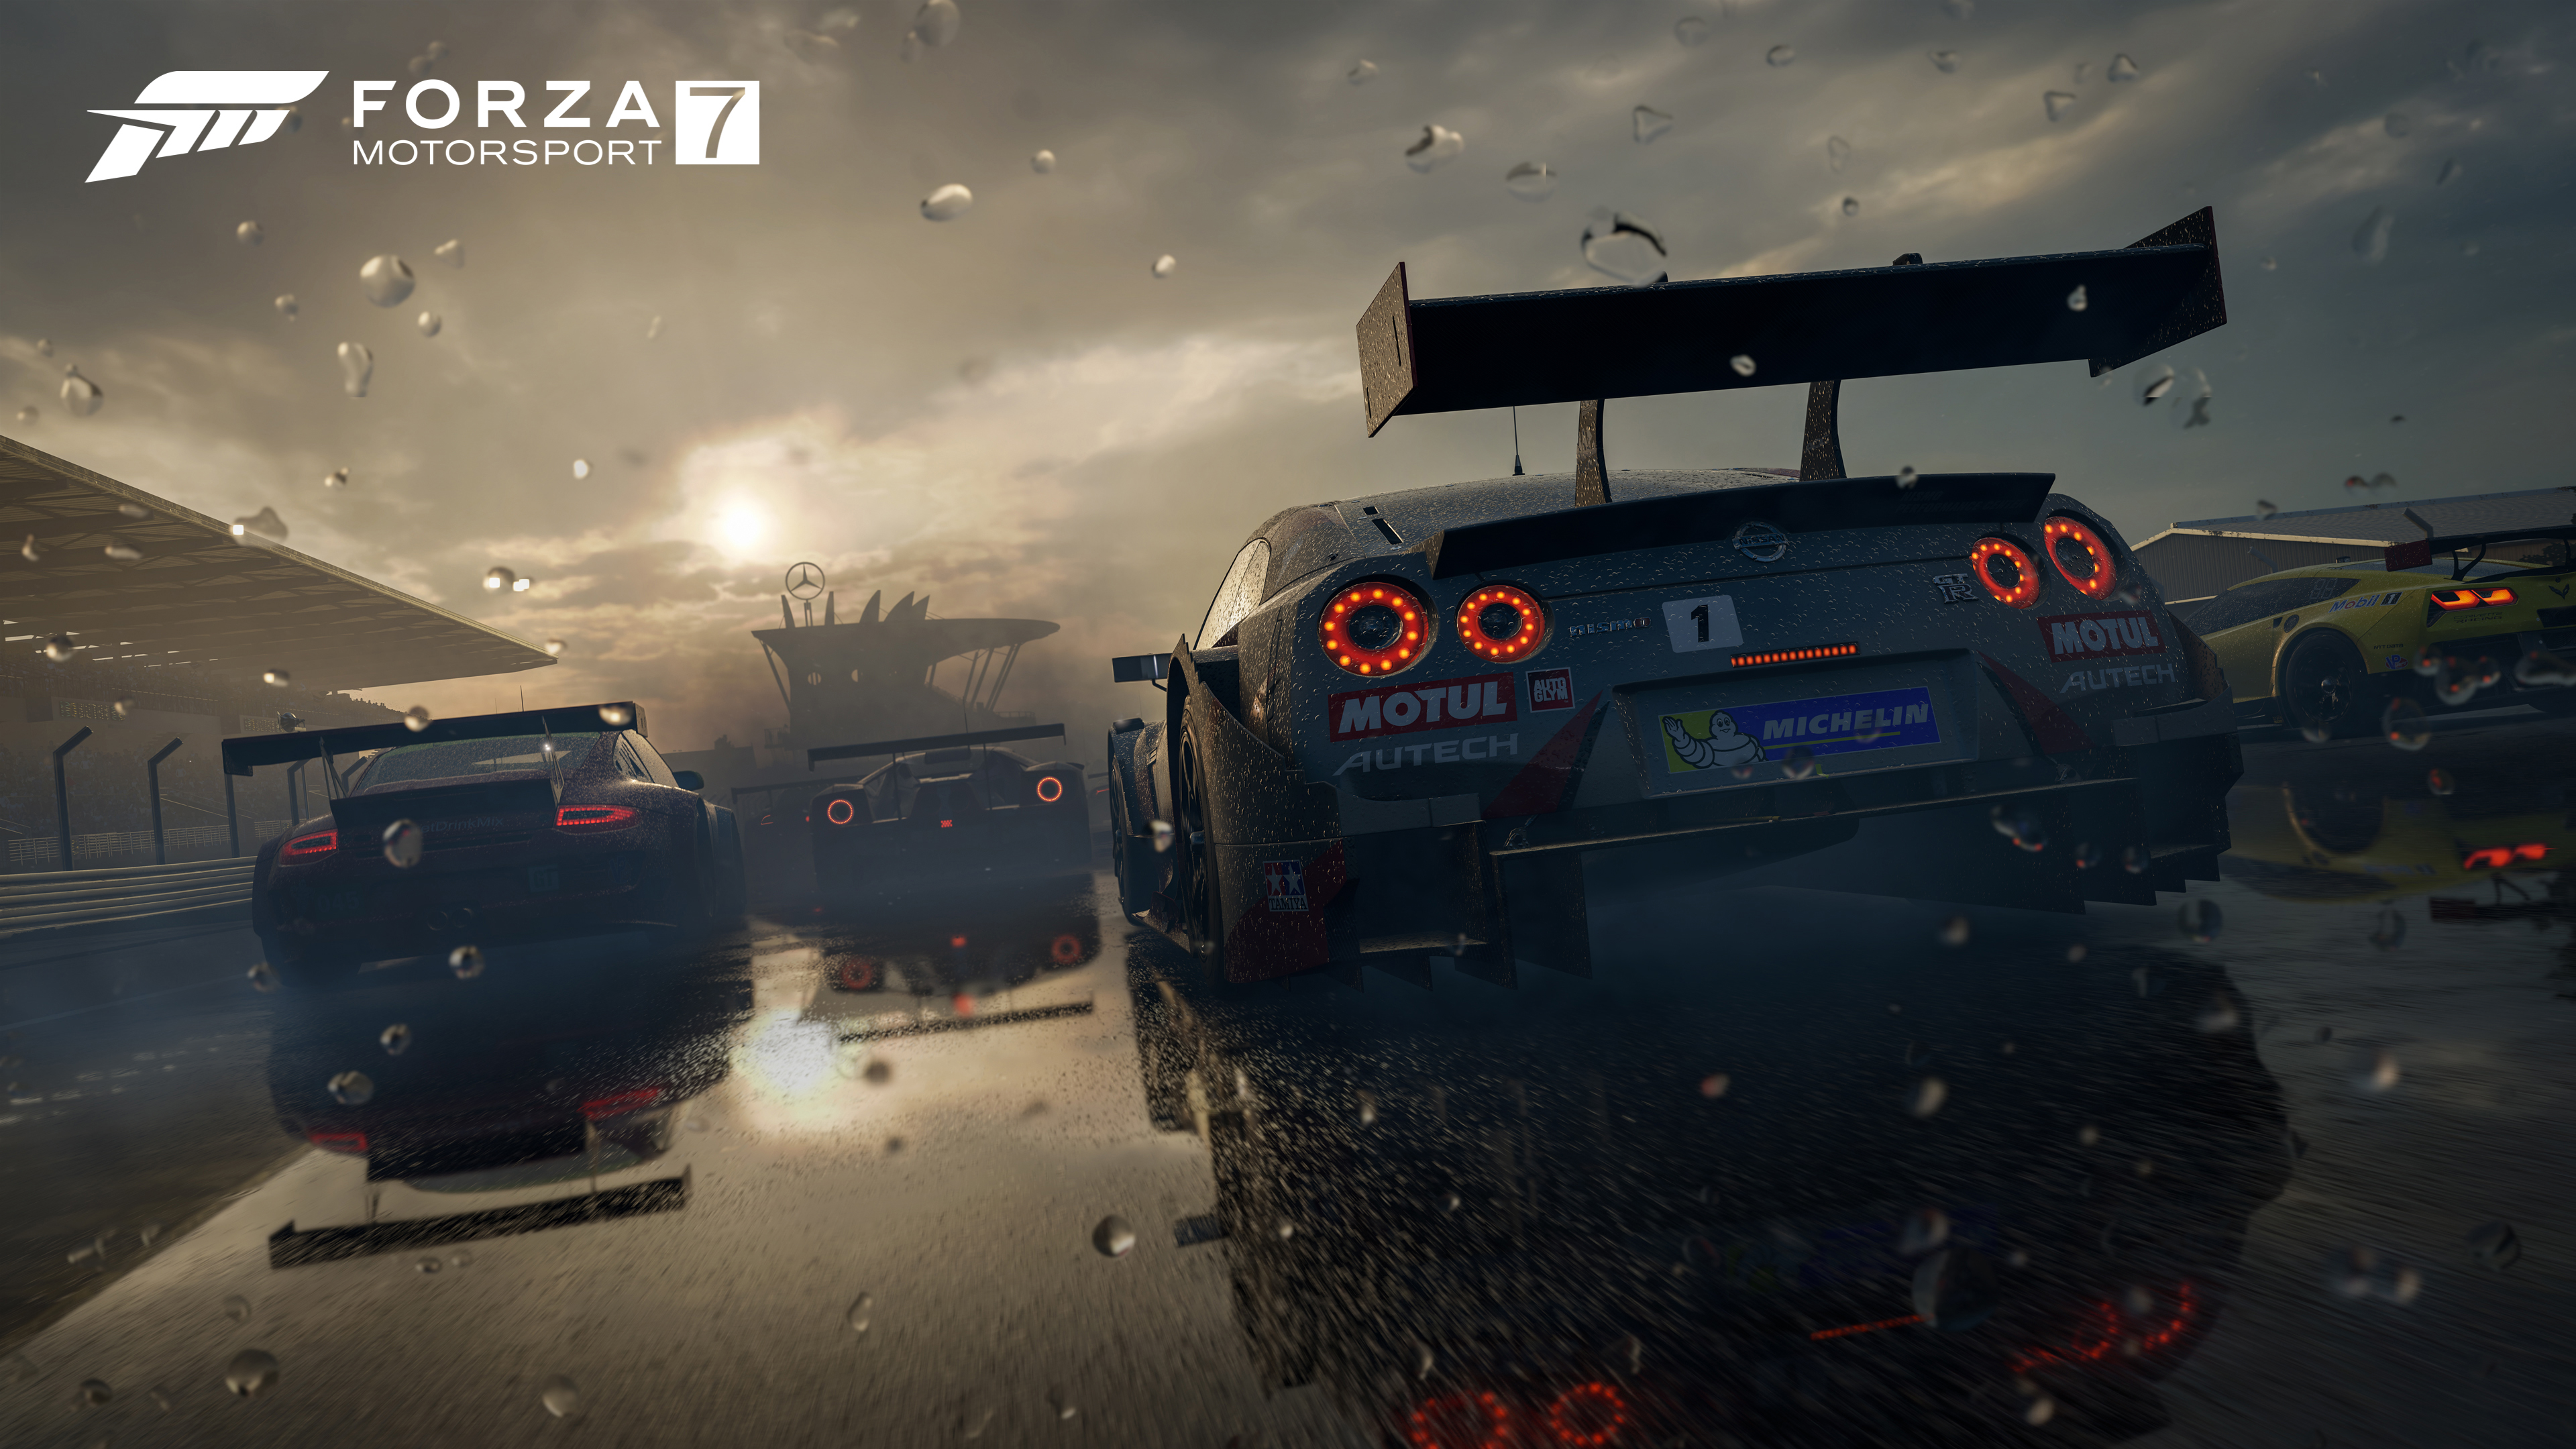 Future Forza Motorsport 7 car additions allegedly discovered